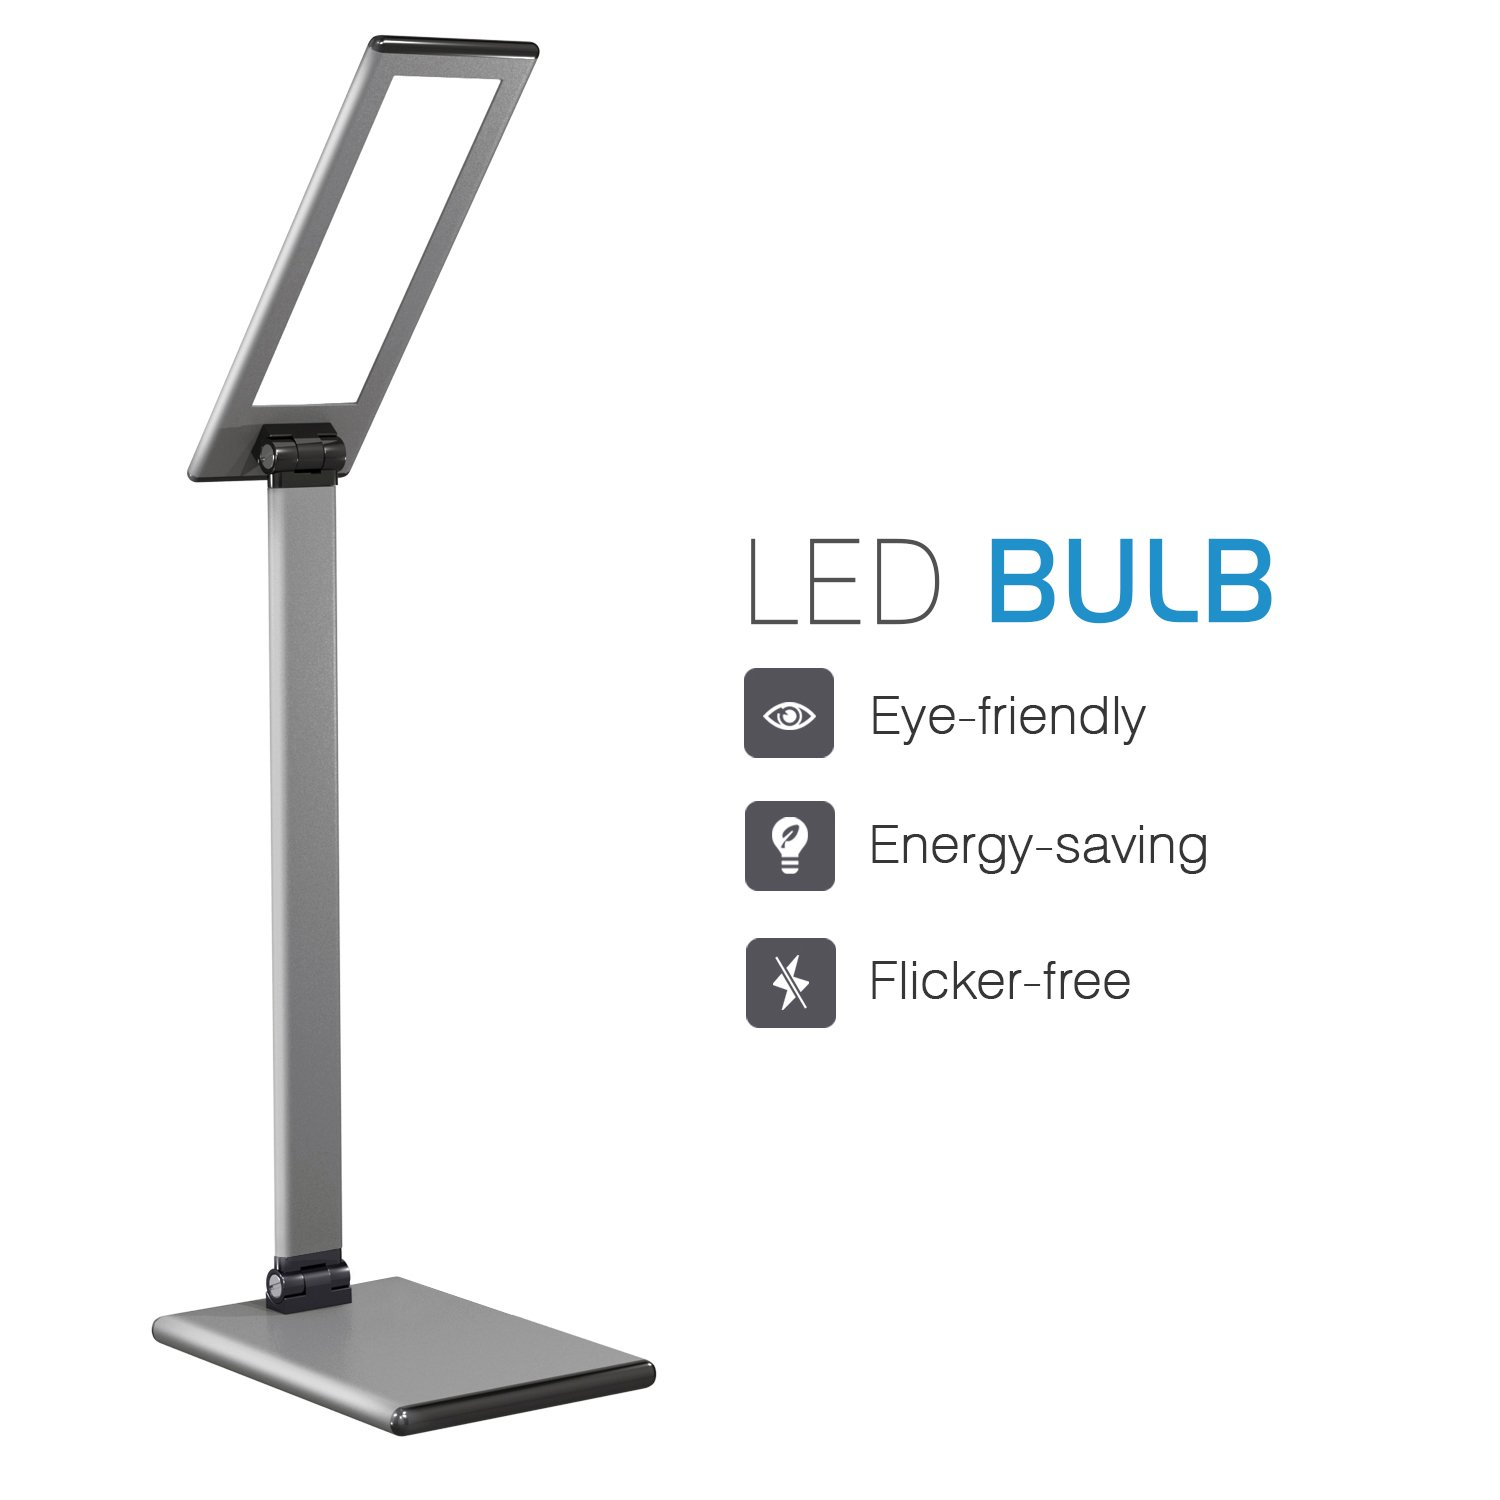 MoKo LED Desk Lamp, 8W Eye-Care Smart Touch Control Table Lamps with Rugged Aluminum Alloy Body, Stepless Adjusted Color Temperature/Brightness Level, Rotatable Arm/Head, Memory Function - Dark Gray by MoKo (Image #2)